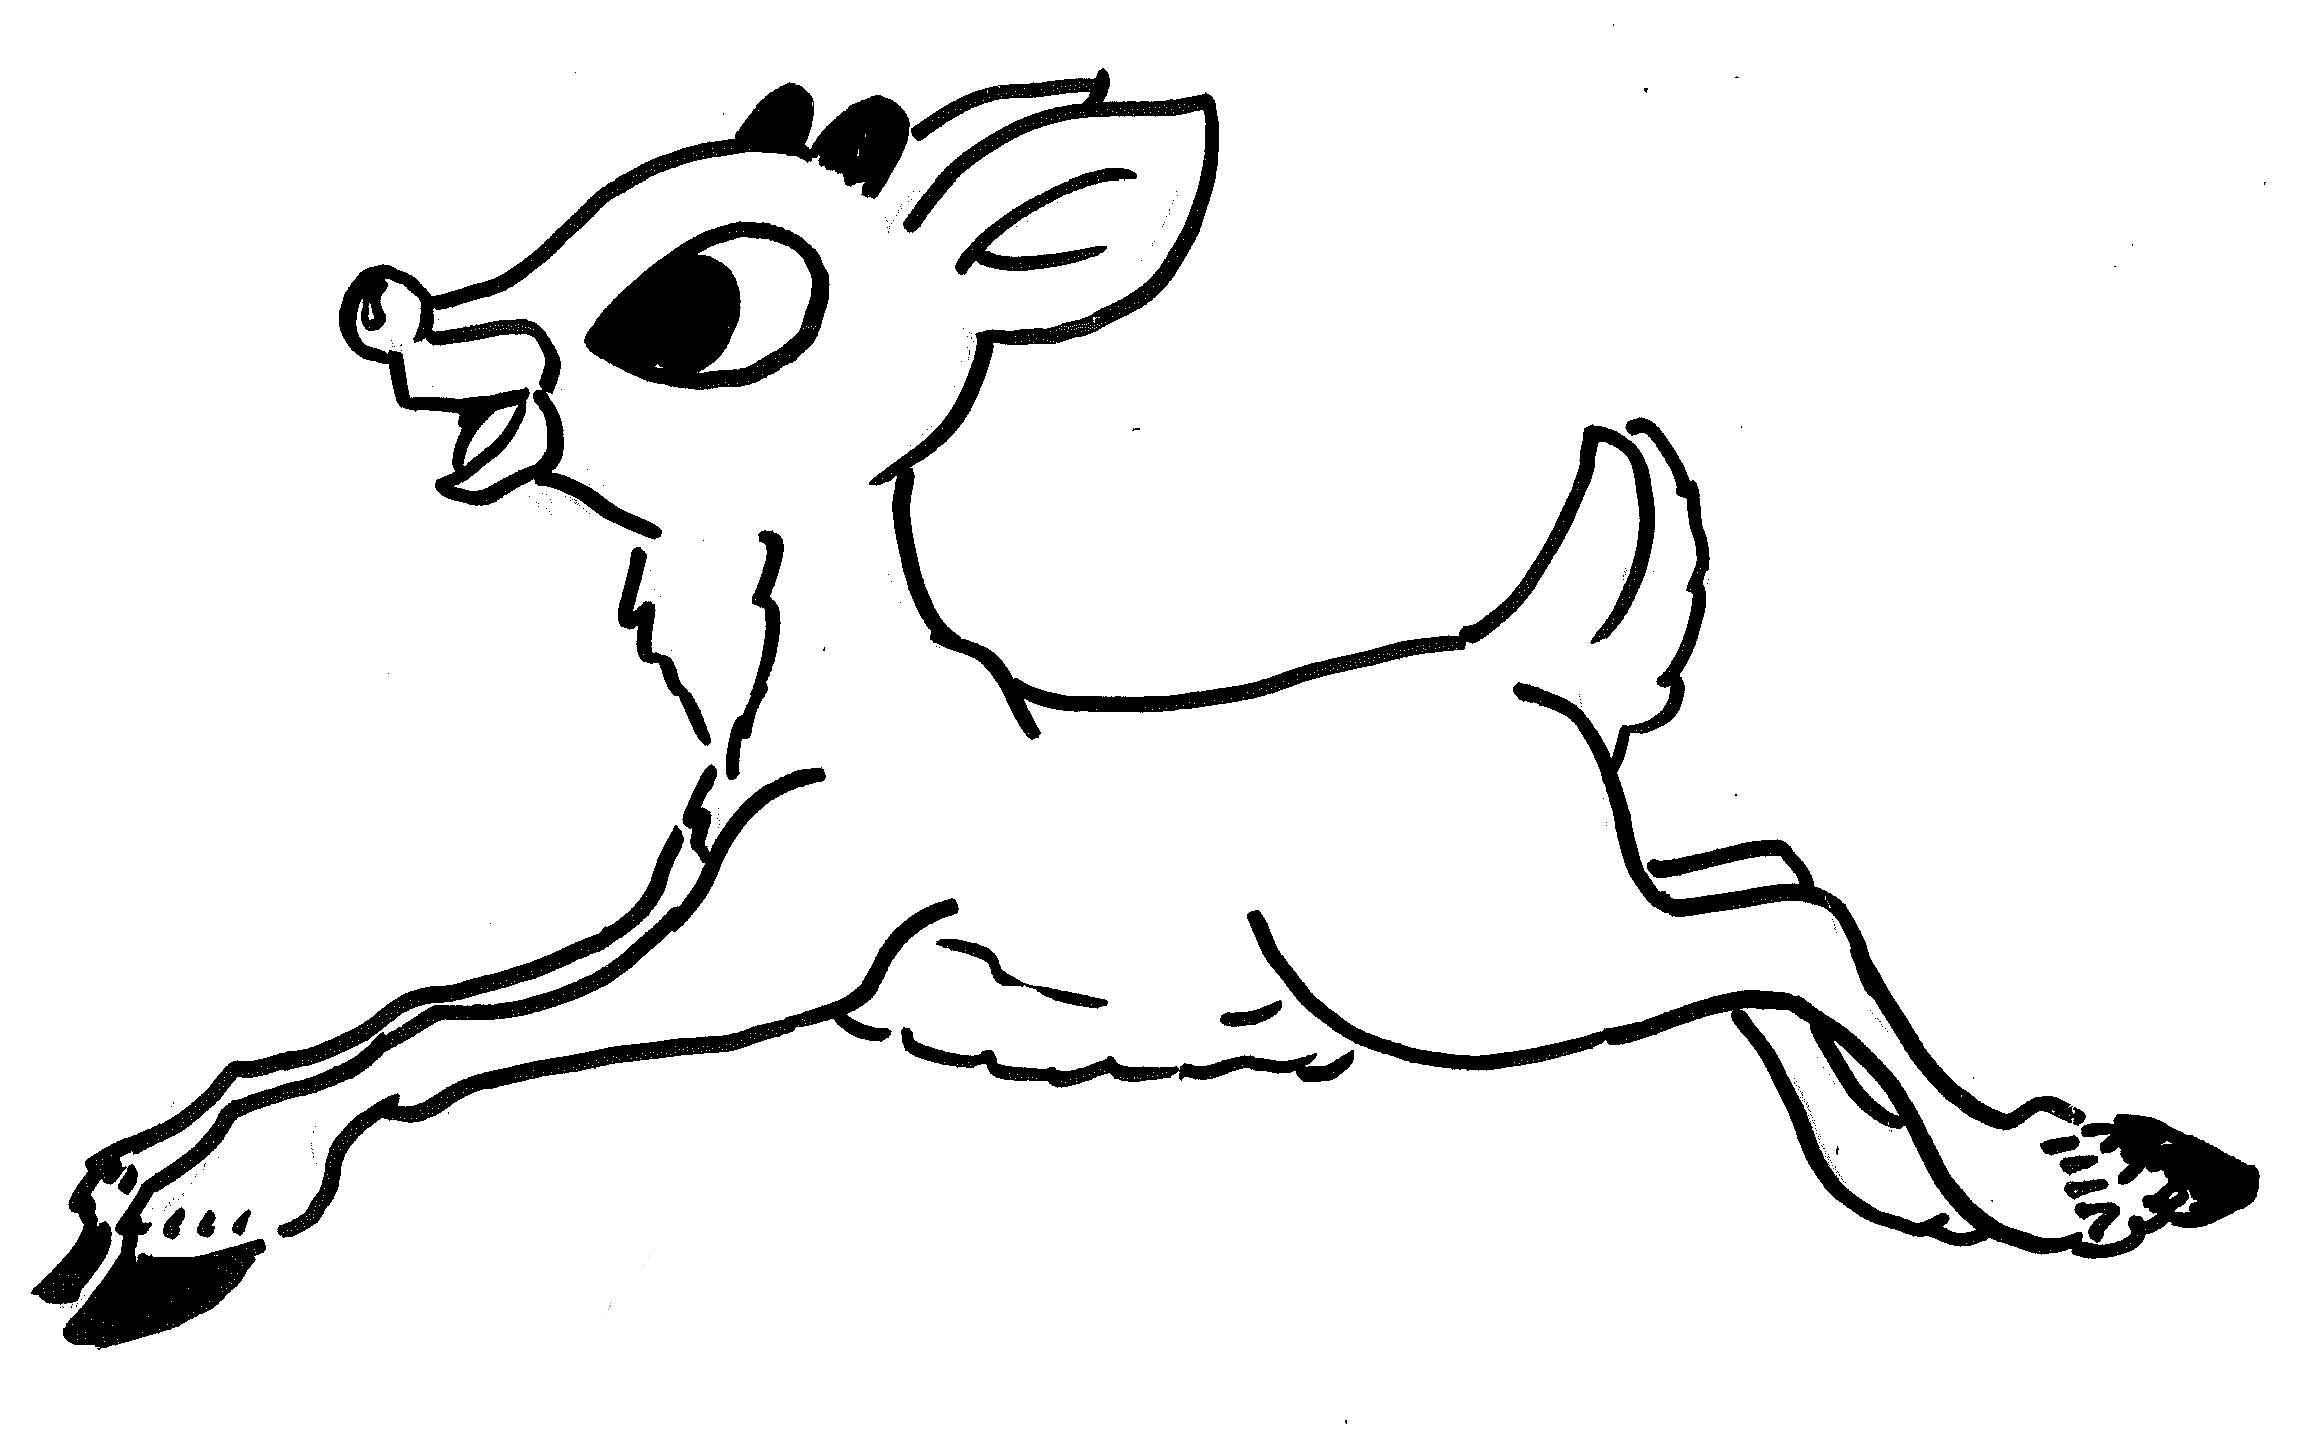 2315x1443 Reindeer Coloring Pages Page A Baby Vitlt Com At Tixac